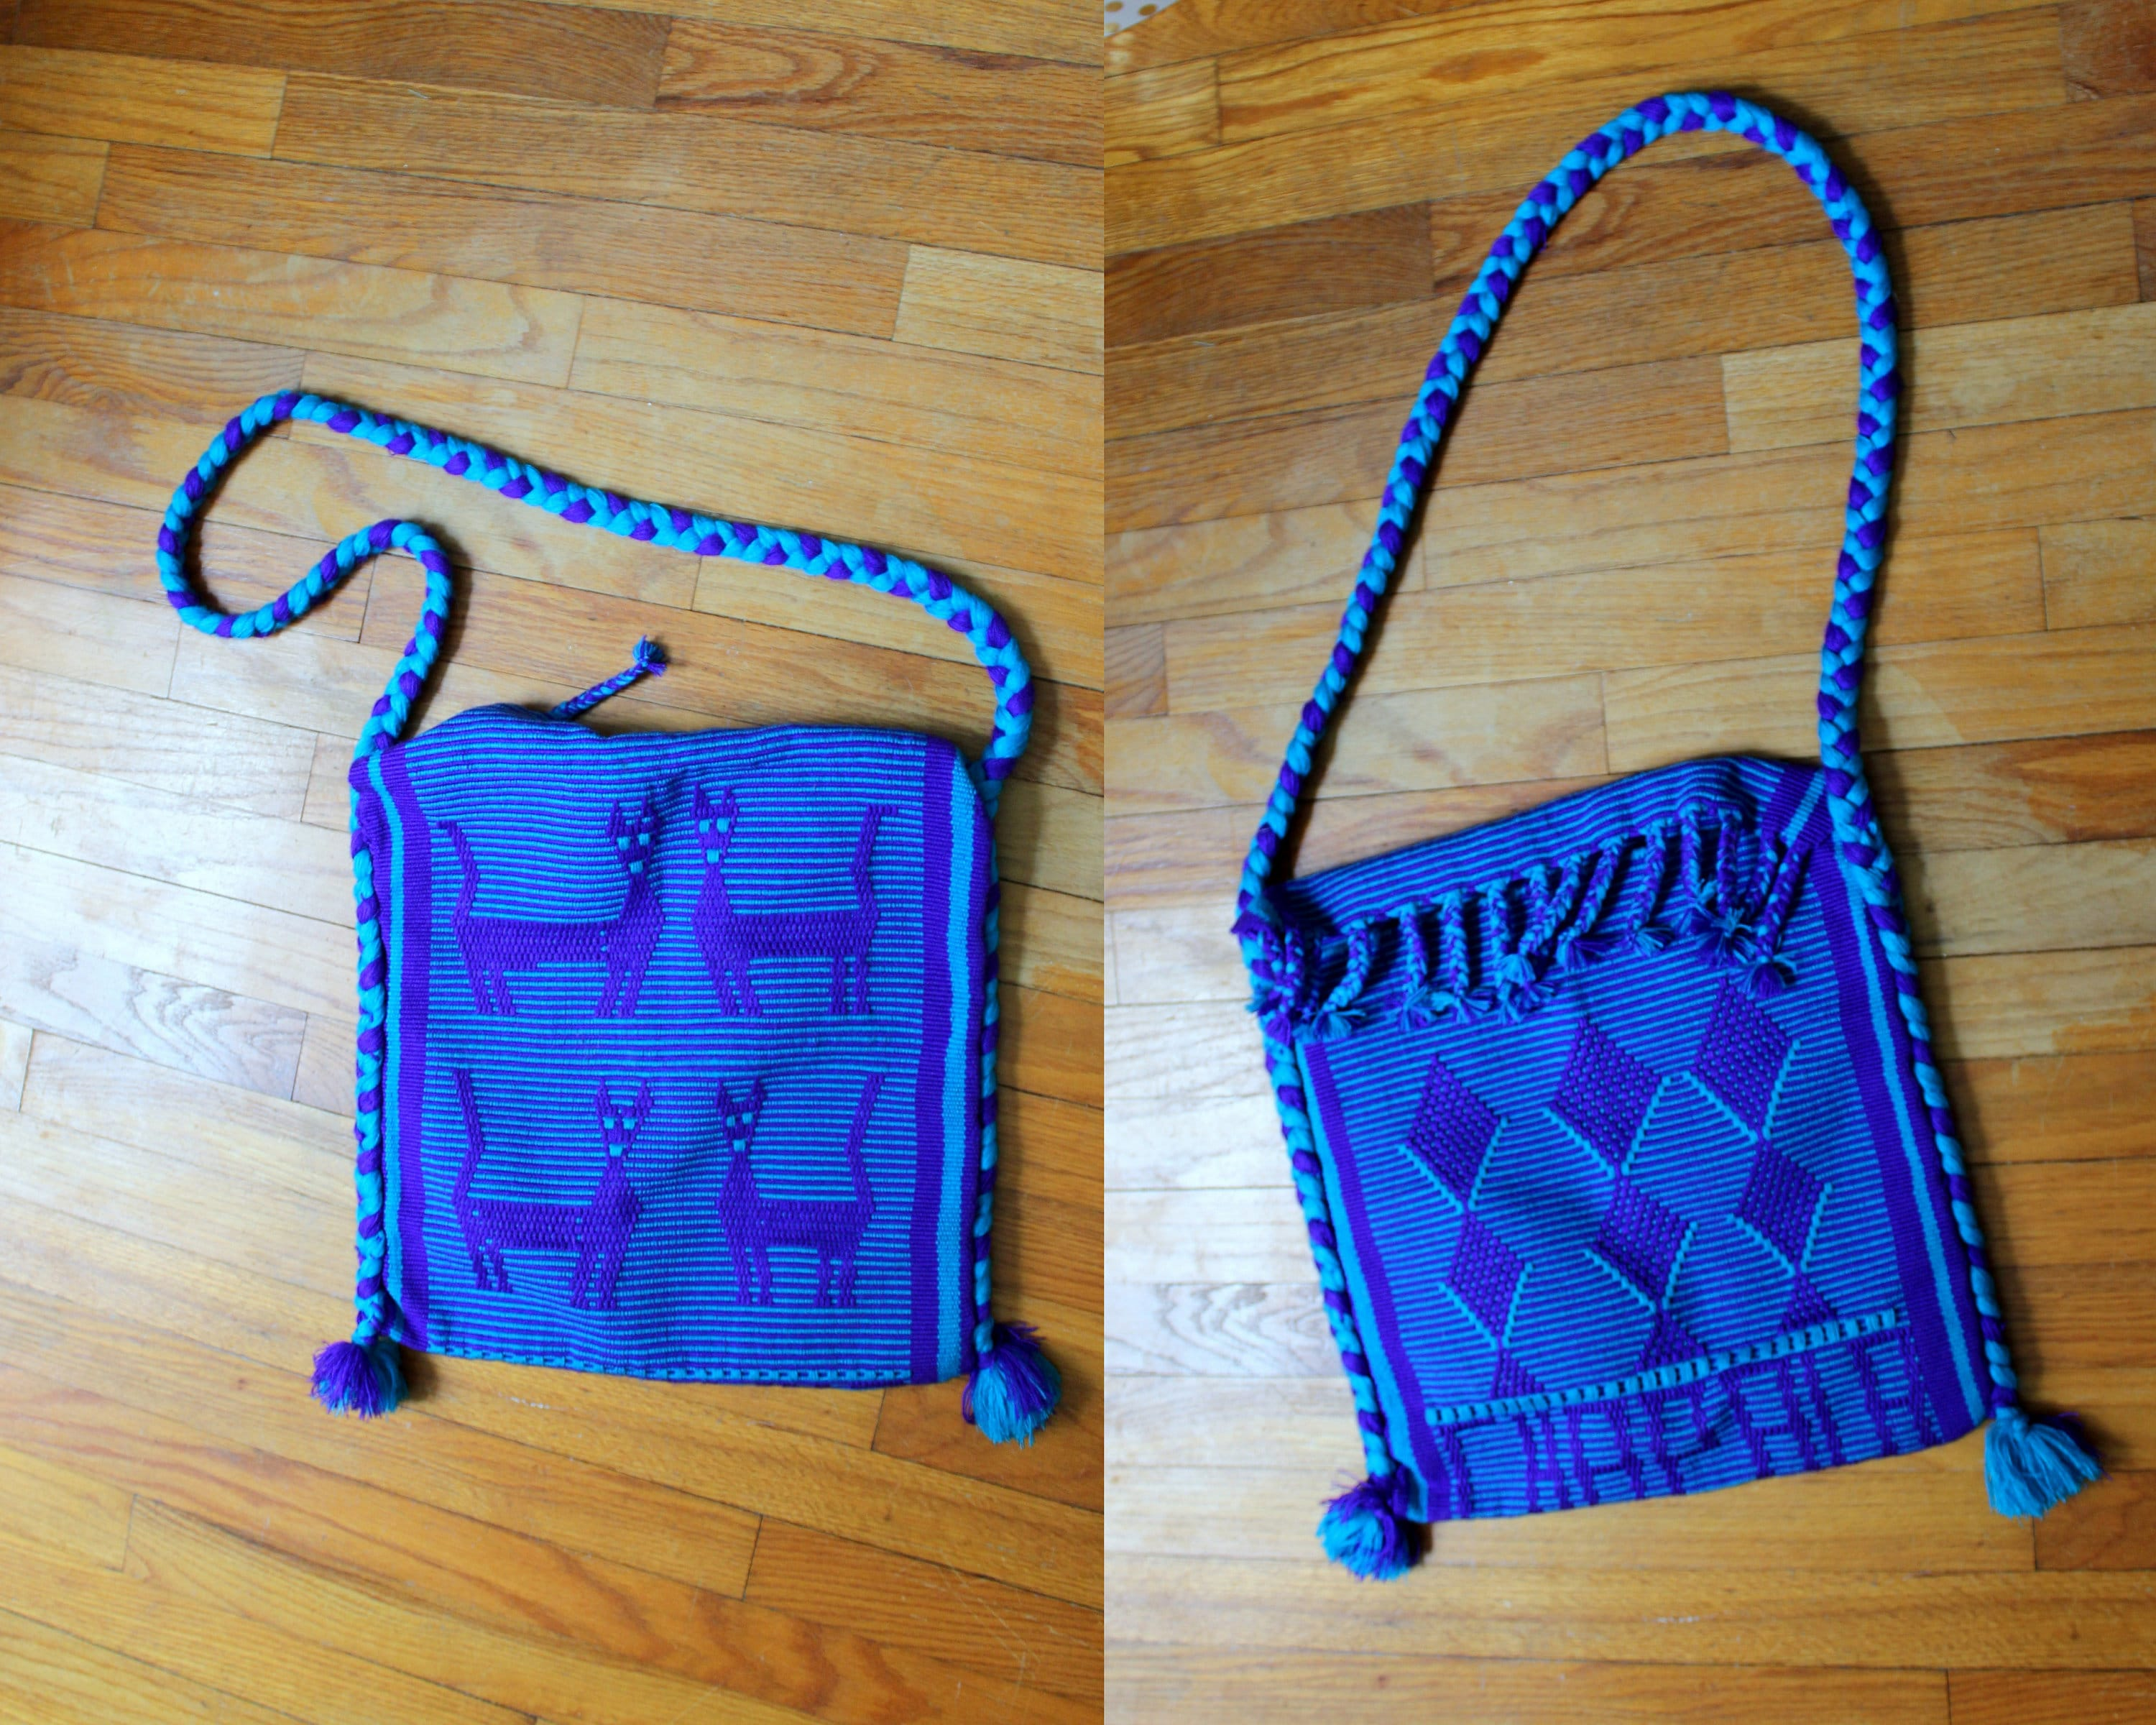 44d7d16064 Cat Bag // Vintage Woven Blue & Purple Yarn Tote Bag with | Etsy